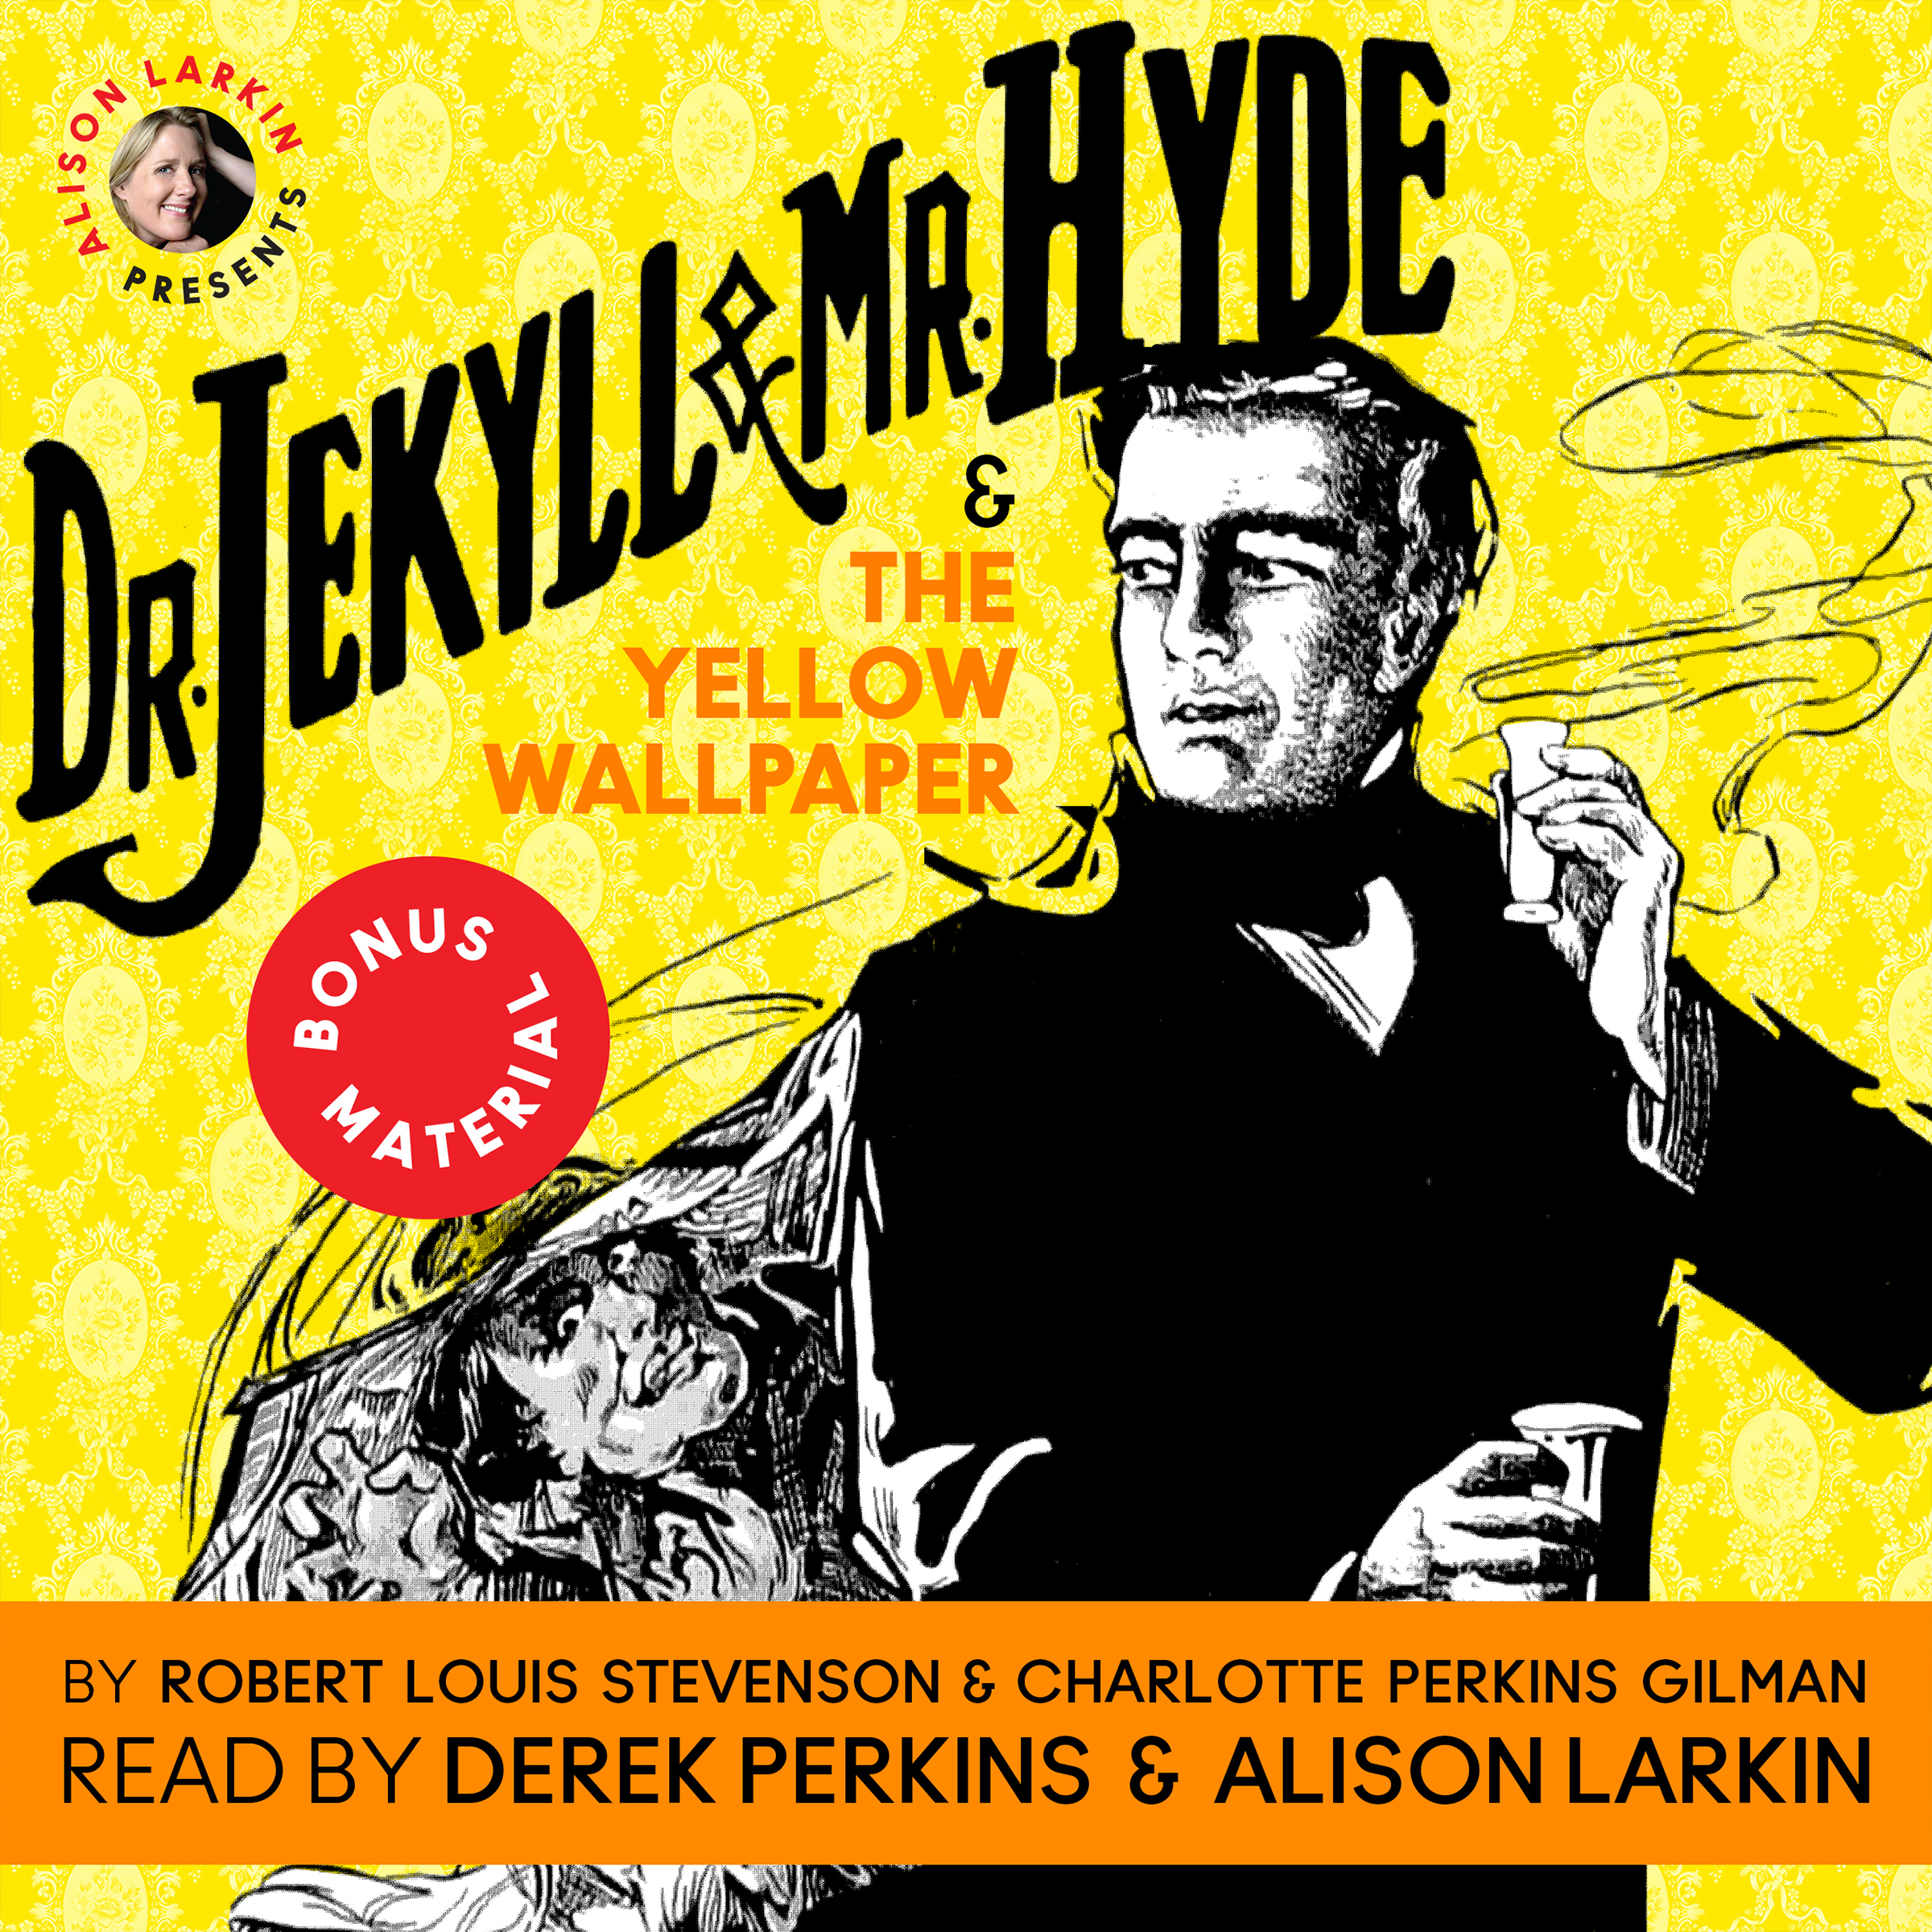 Dr. Jekyll and Mr. Hyde & The Yellow Wallpaper